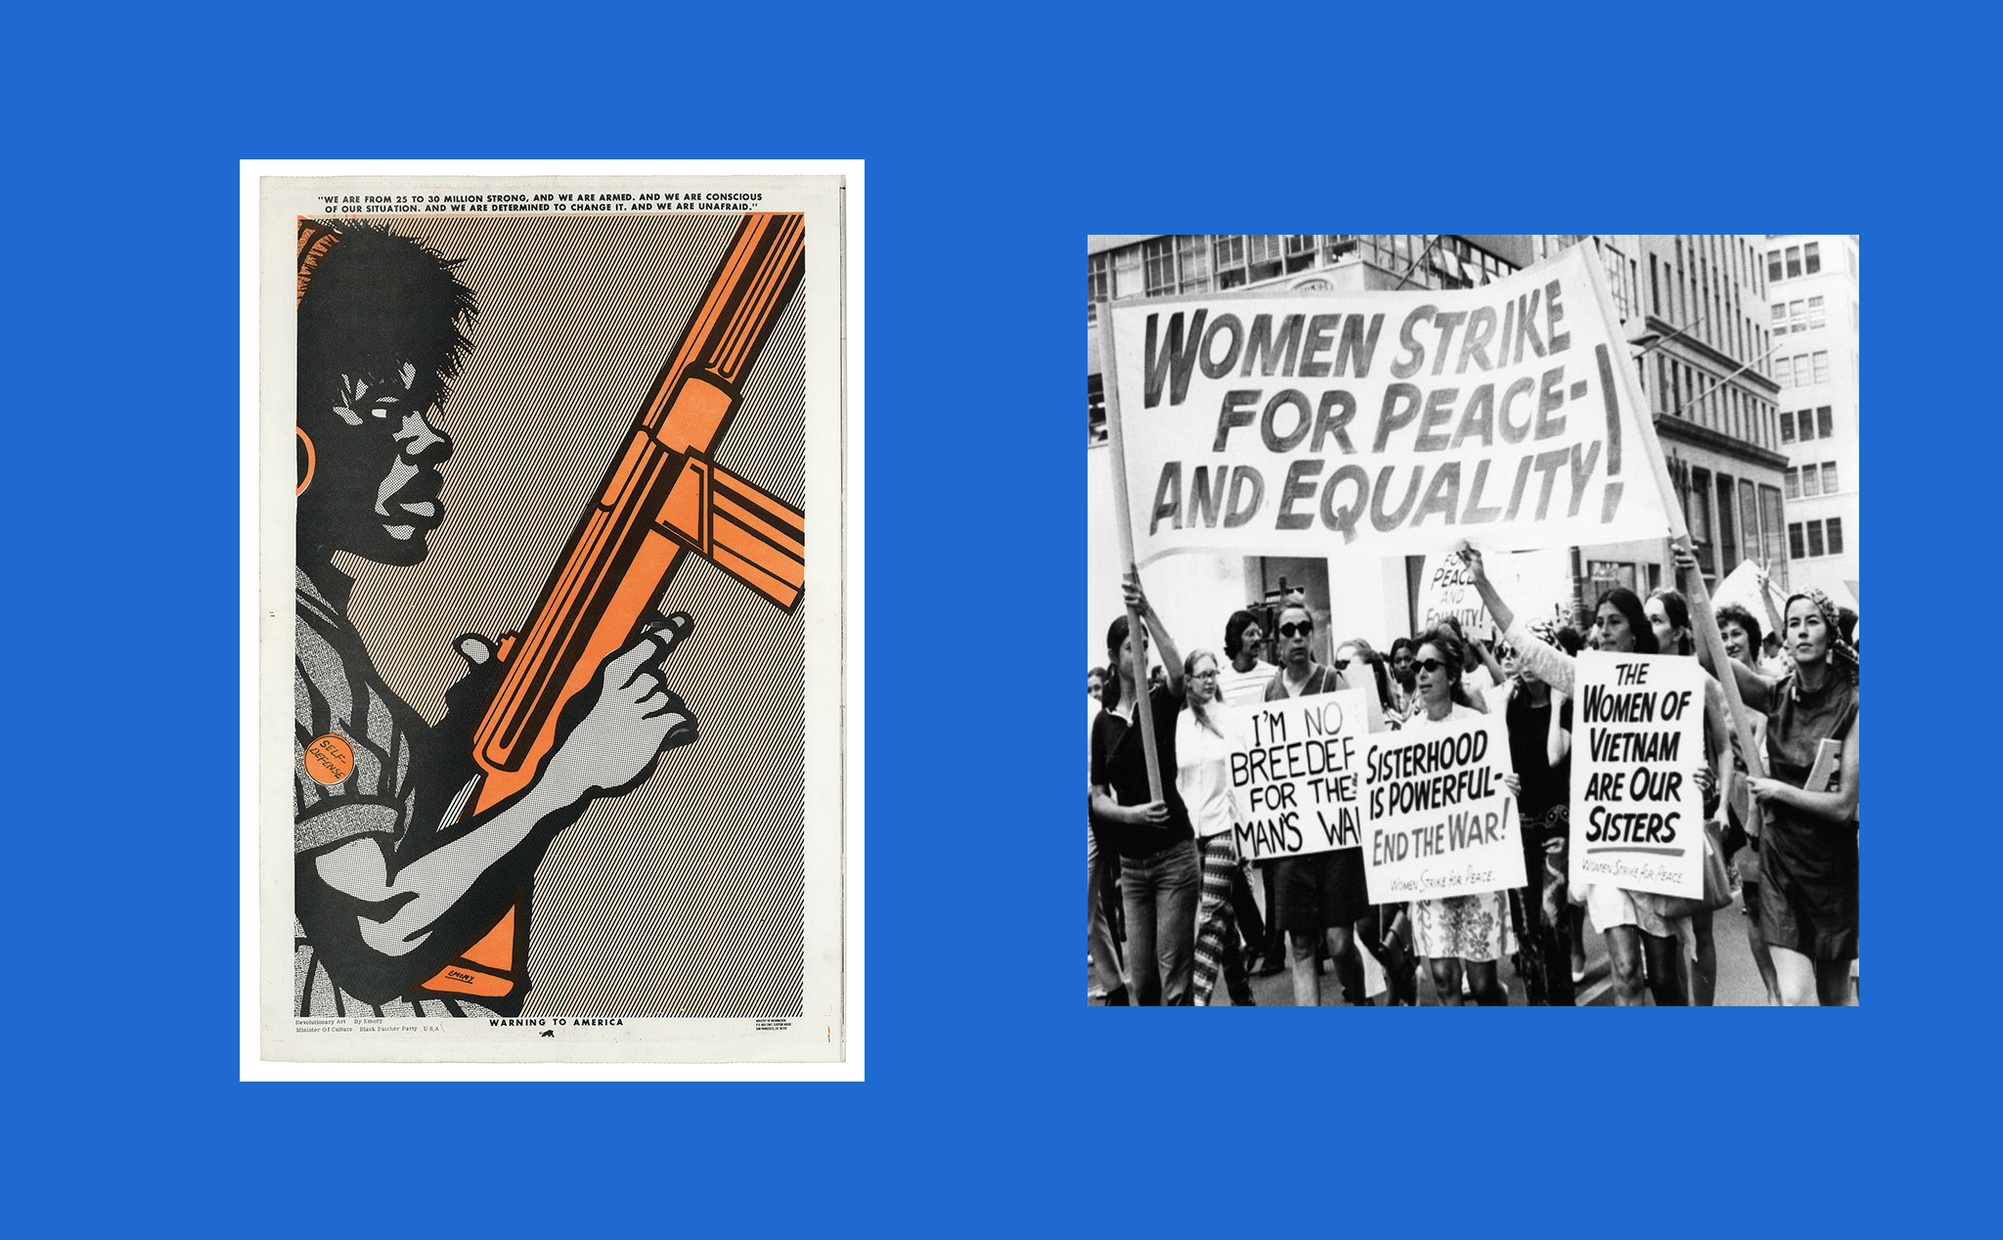 Two images side by side, one image is a print of a dark-skinned man in profile holding a machine gun, and the other image is a black and white photograph of a group of light-skinned women marching with protest signs.